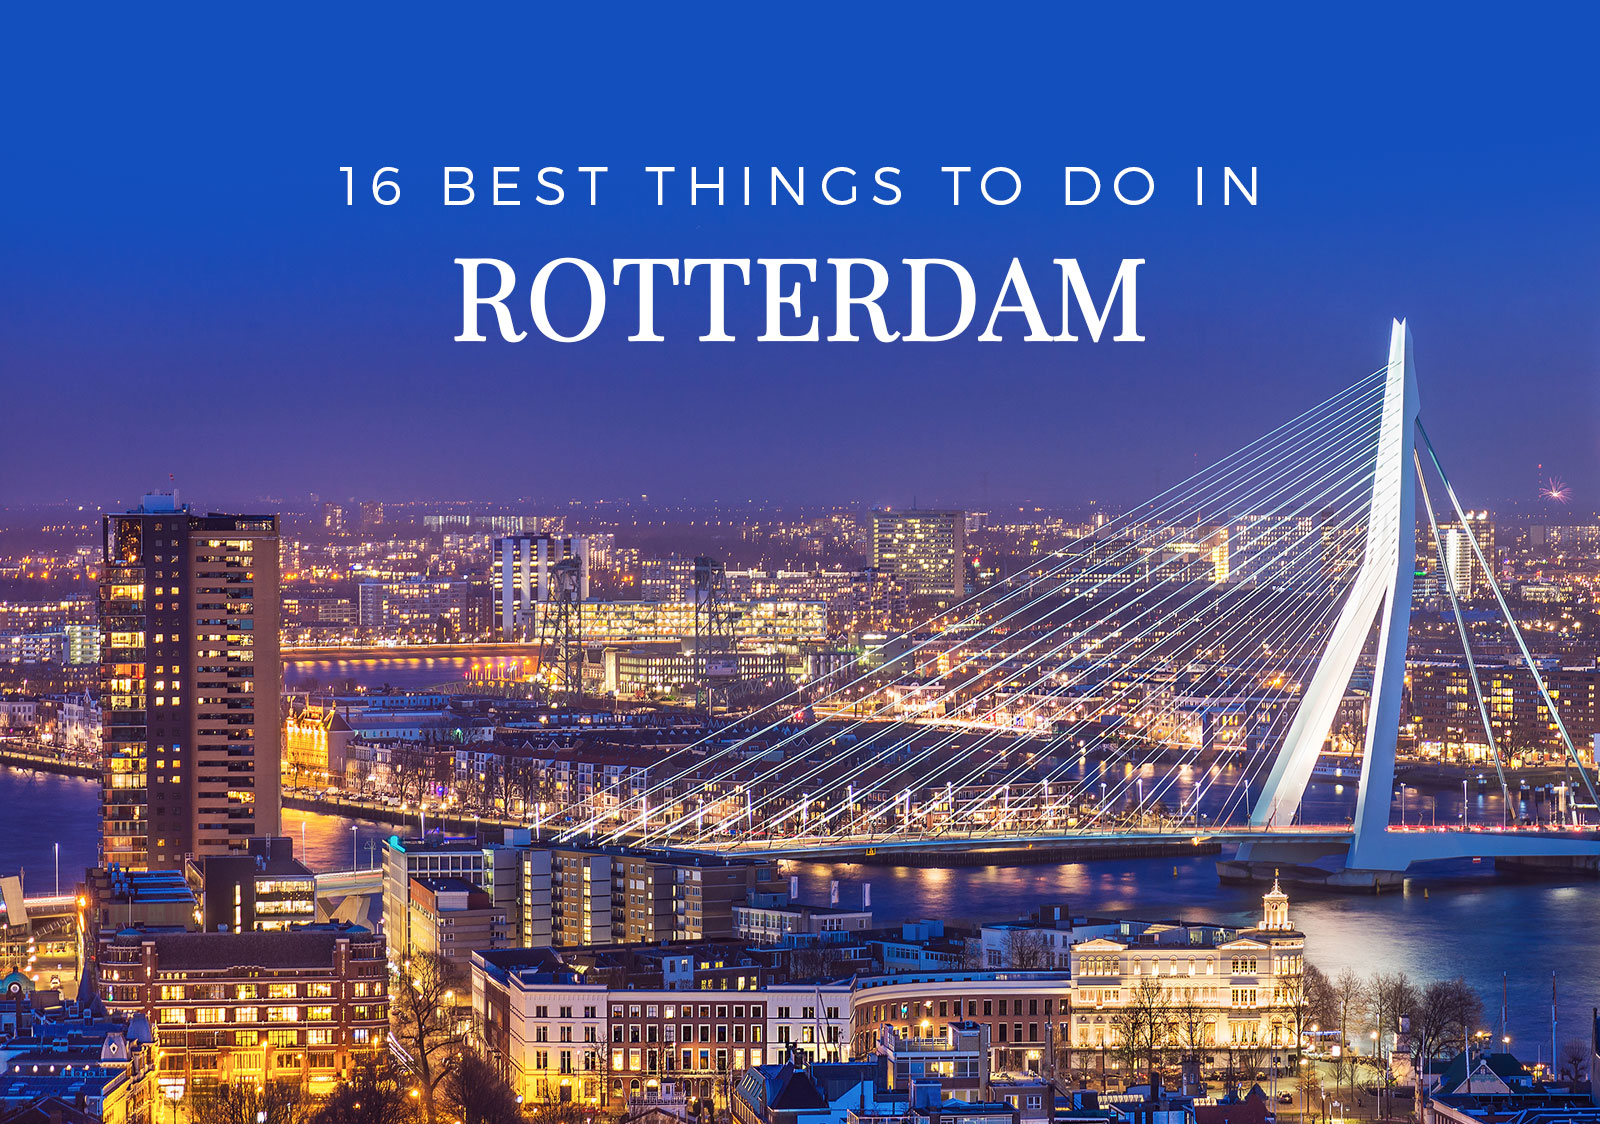 16 best things to do in rotterdam